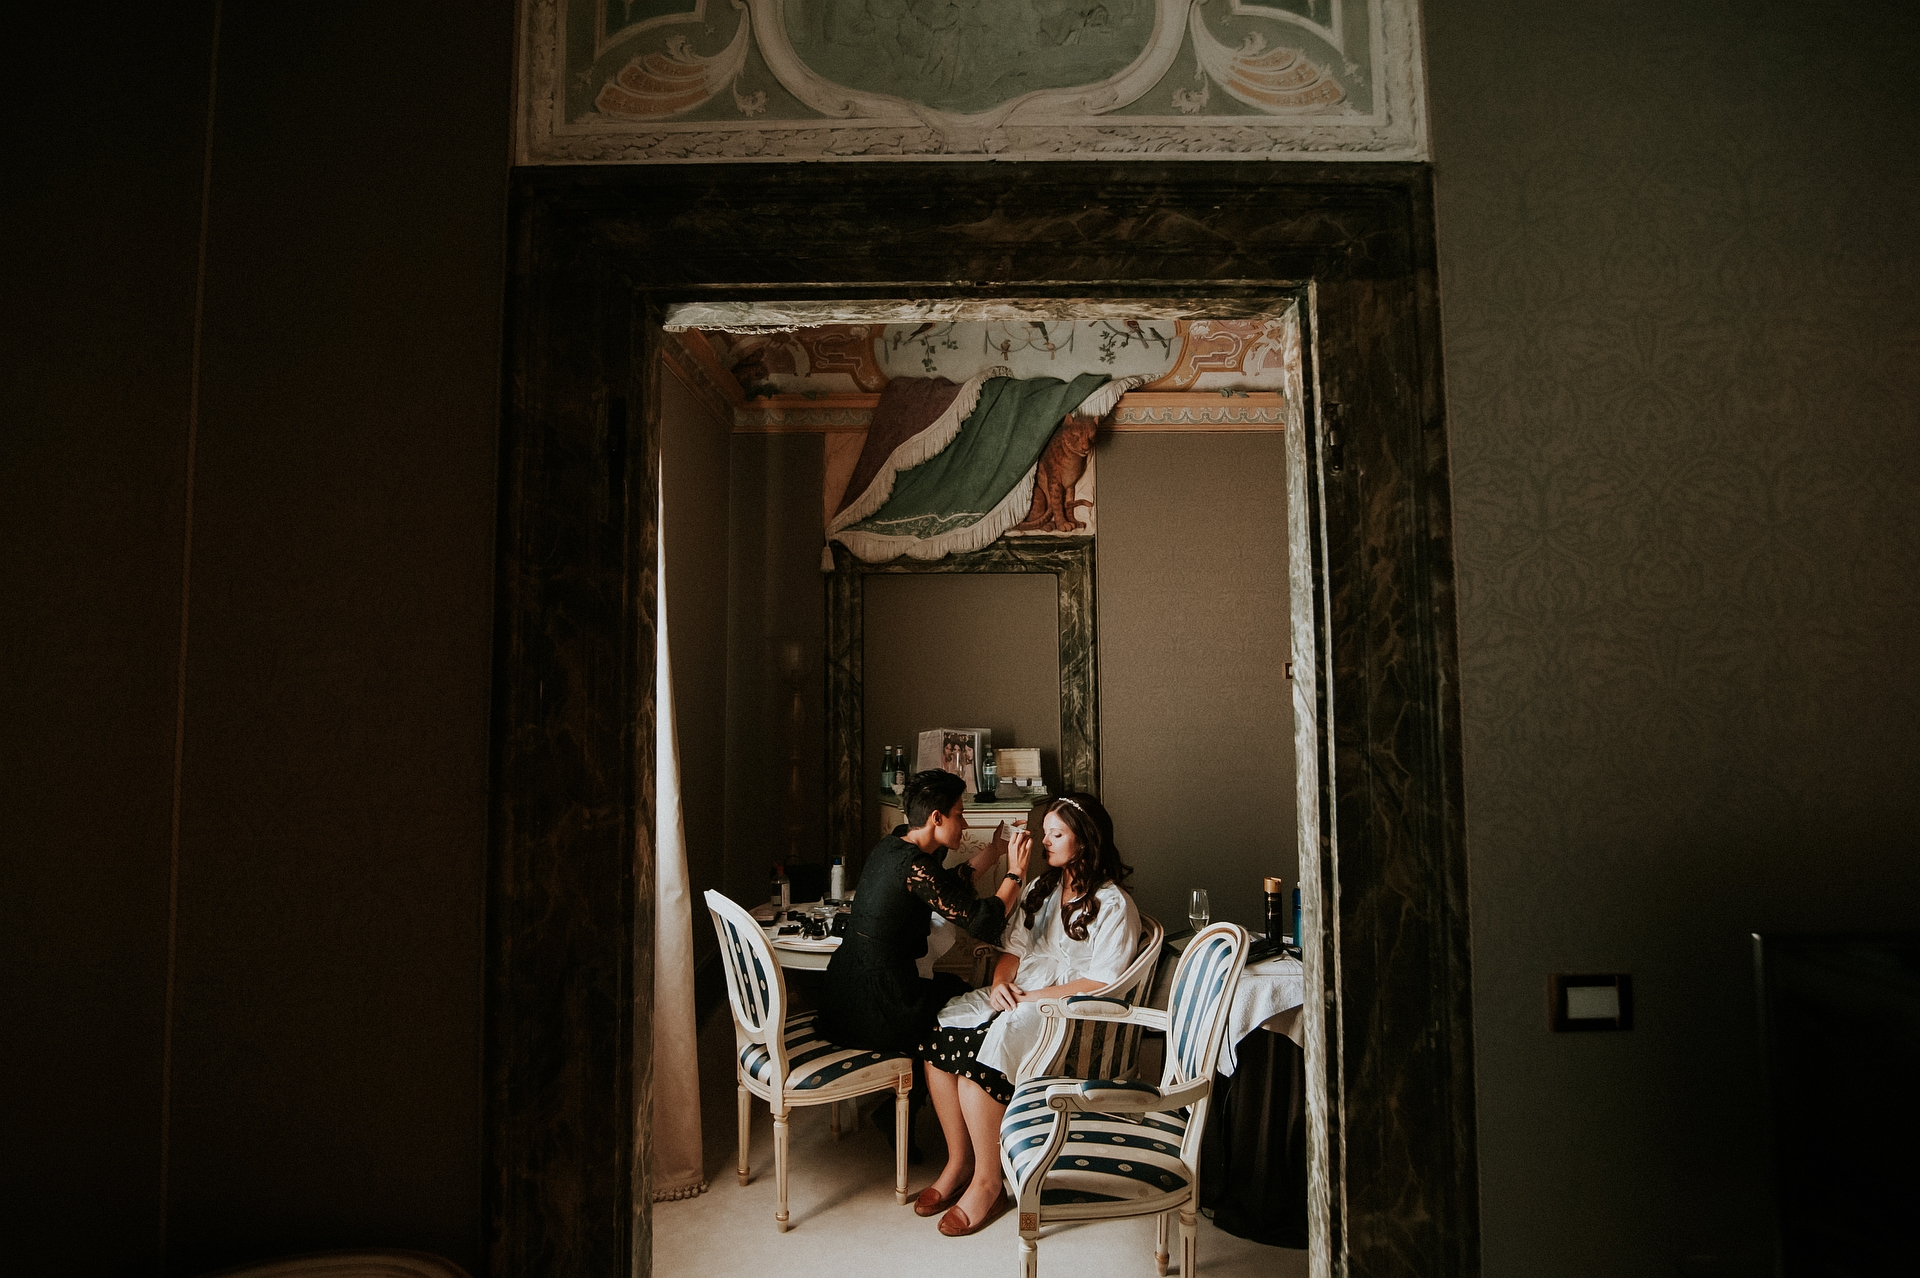 Ca Sagredo Civil Elopement in Venice - Italian Weddings | In this photo the make up artist is doing the bride's make up